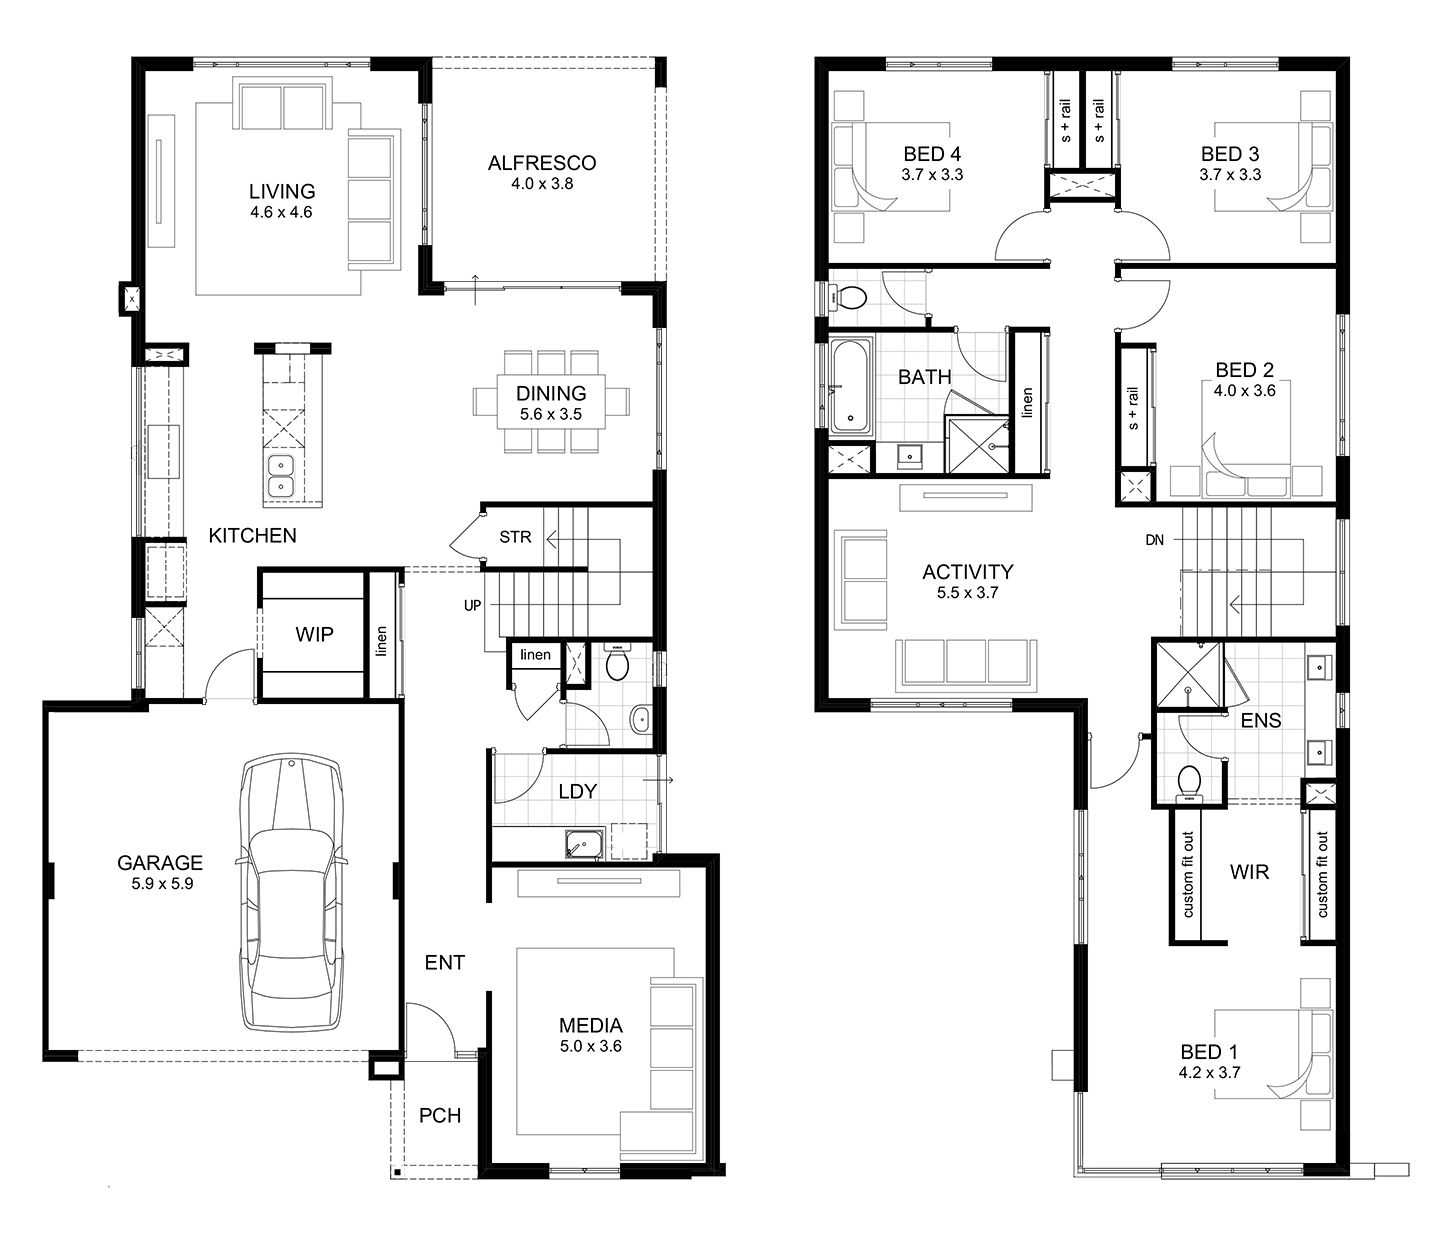 Home Designs Perth | apg Homes | House layouts, 4 bedroom ...